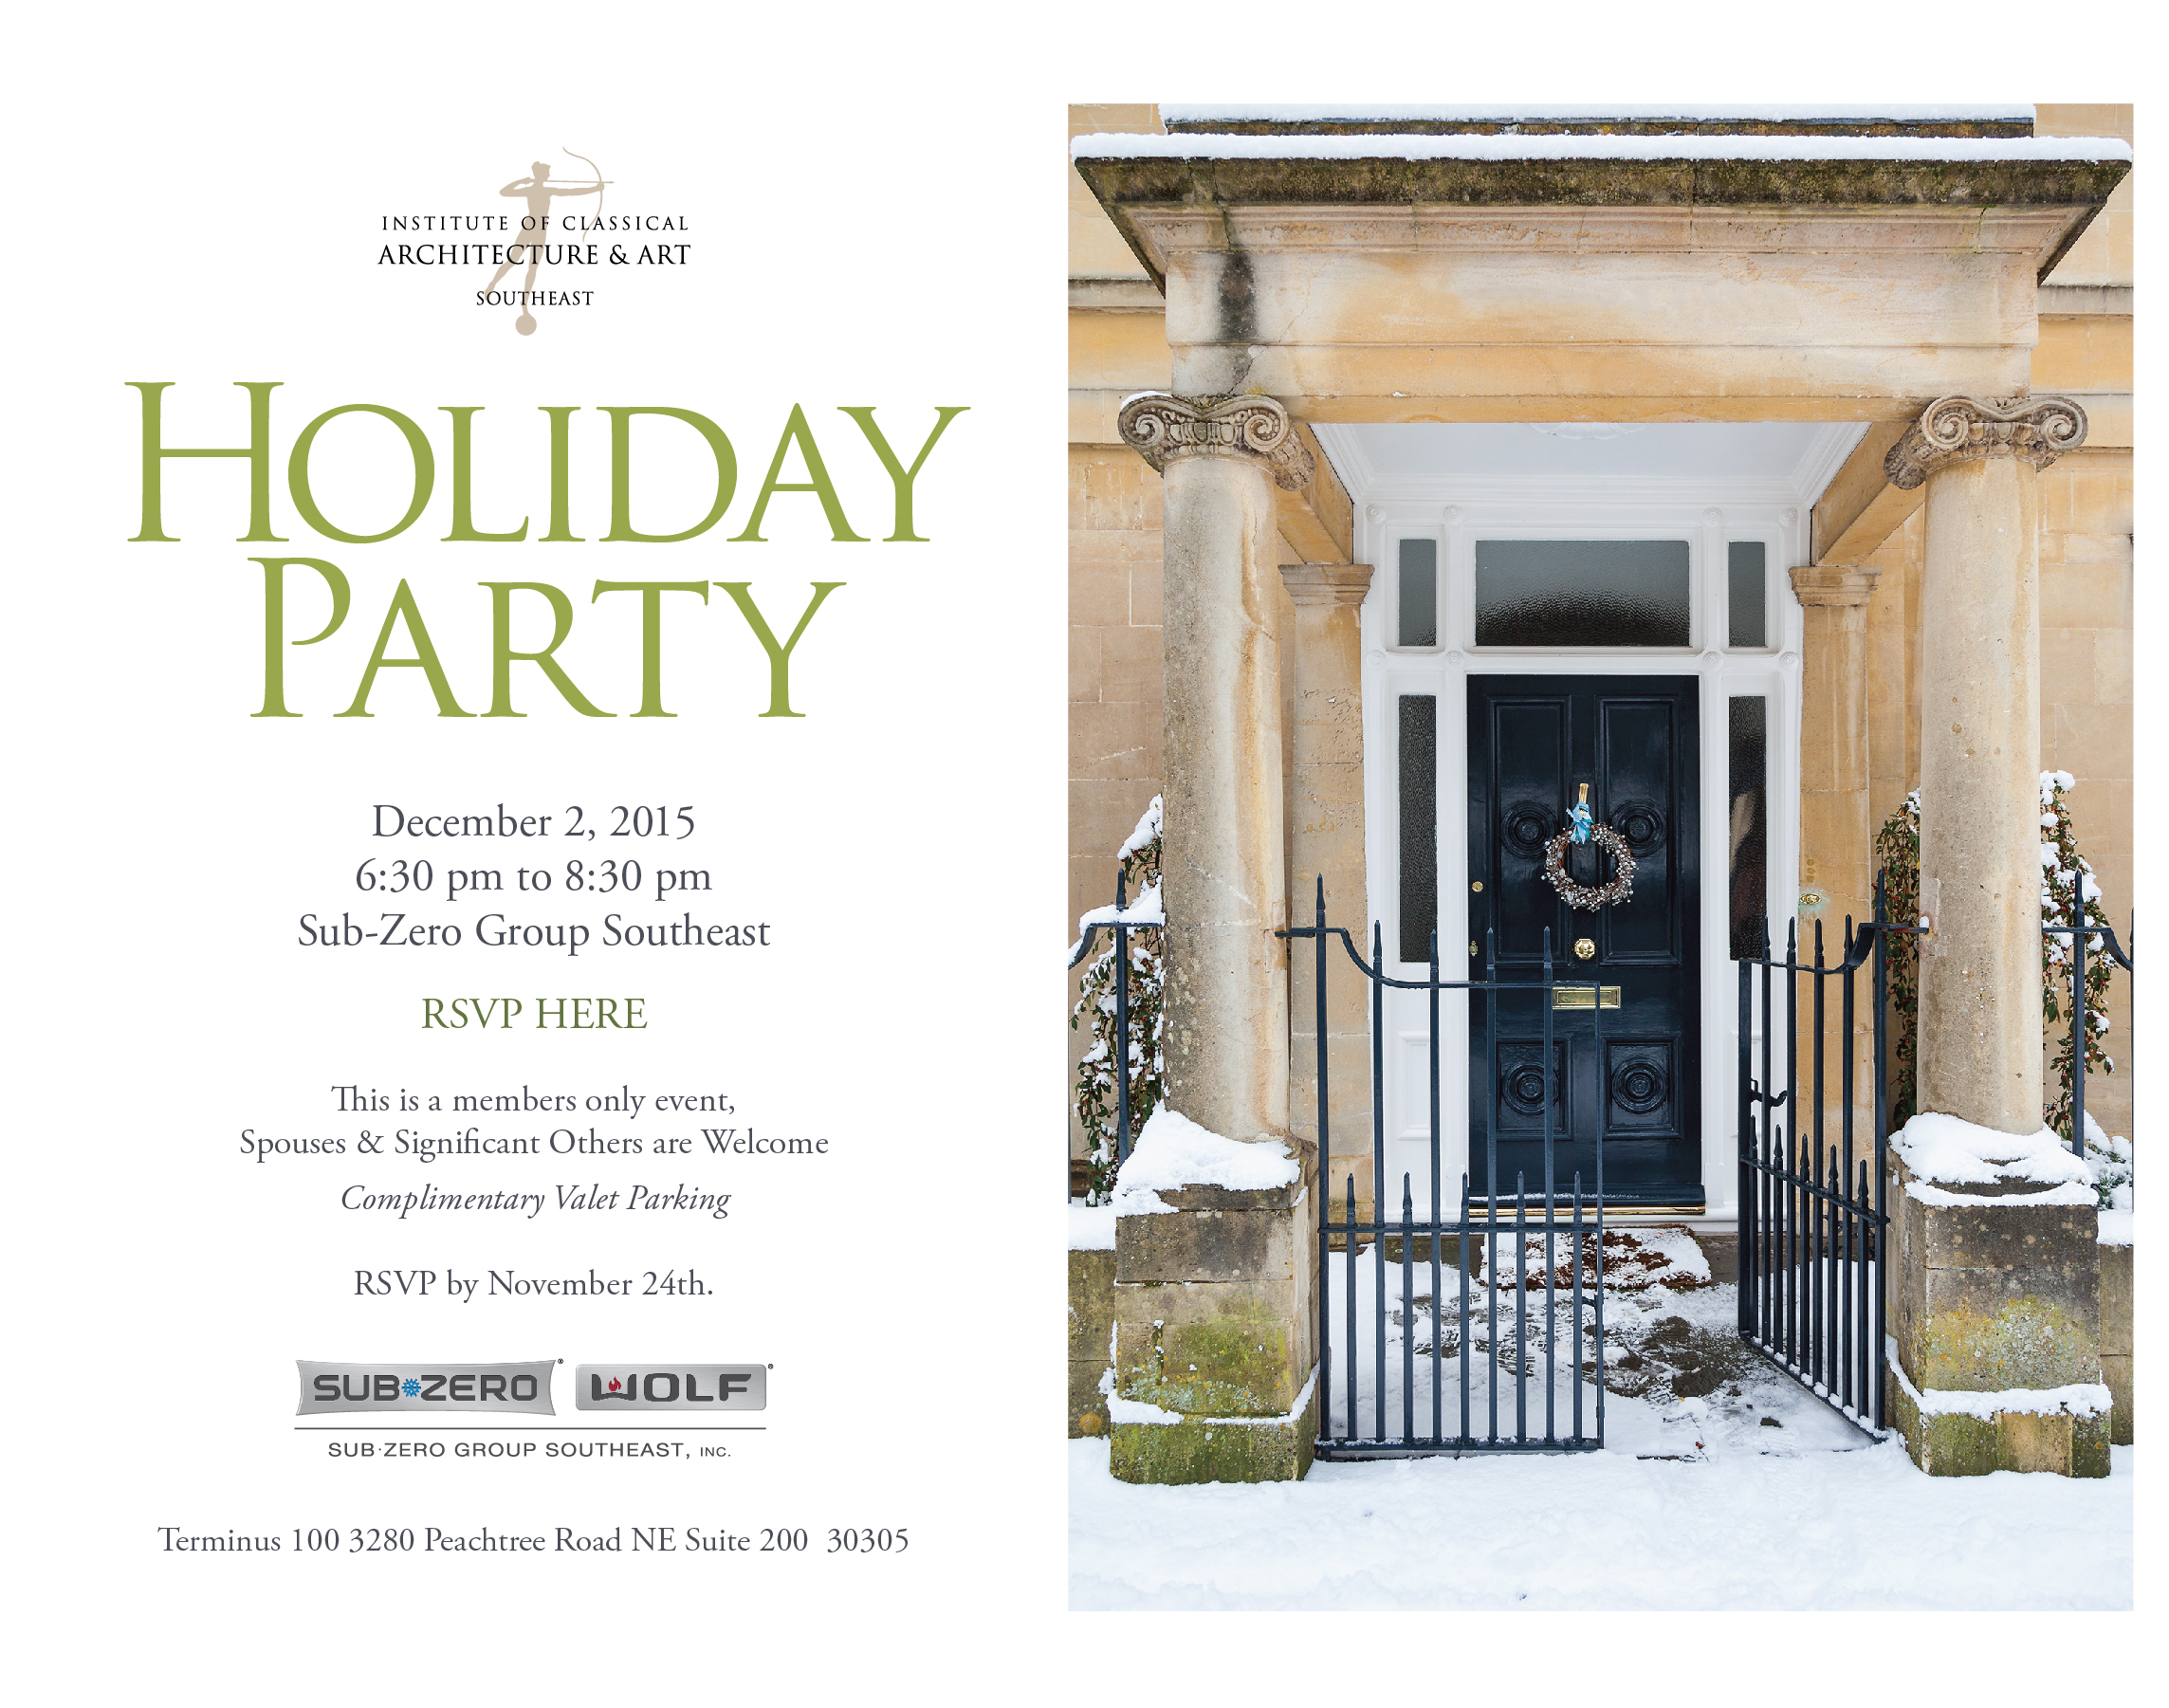 HolidayParty2015